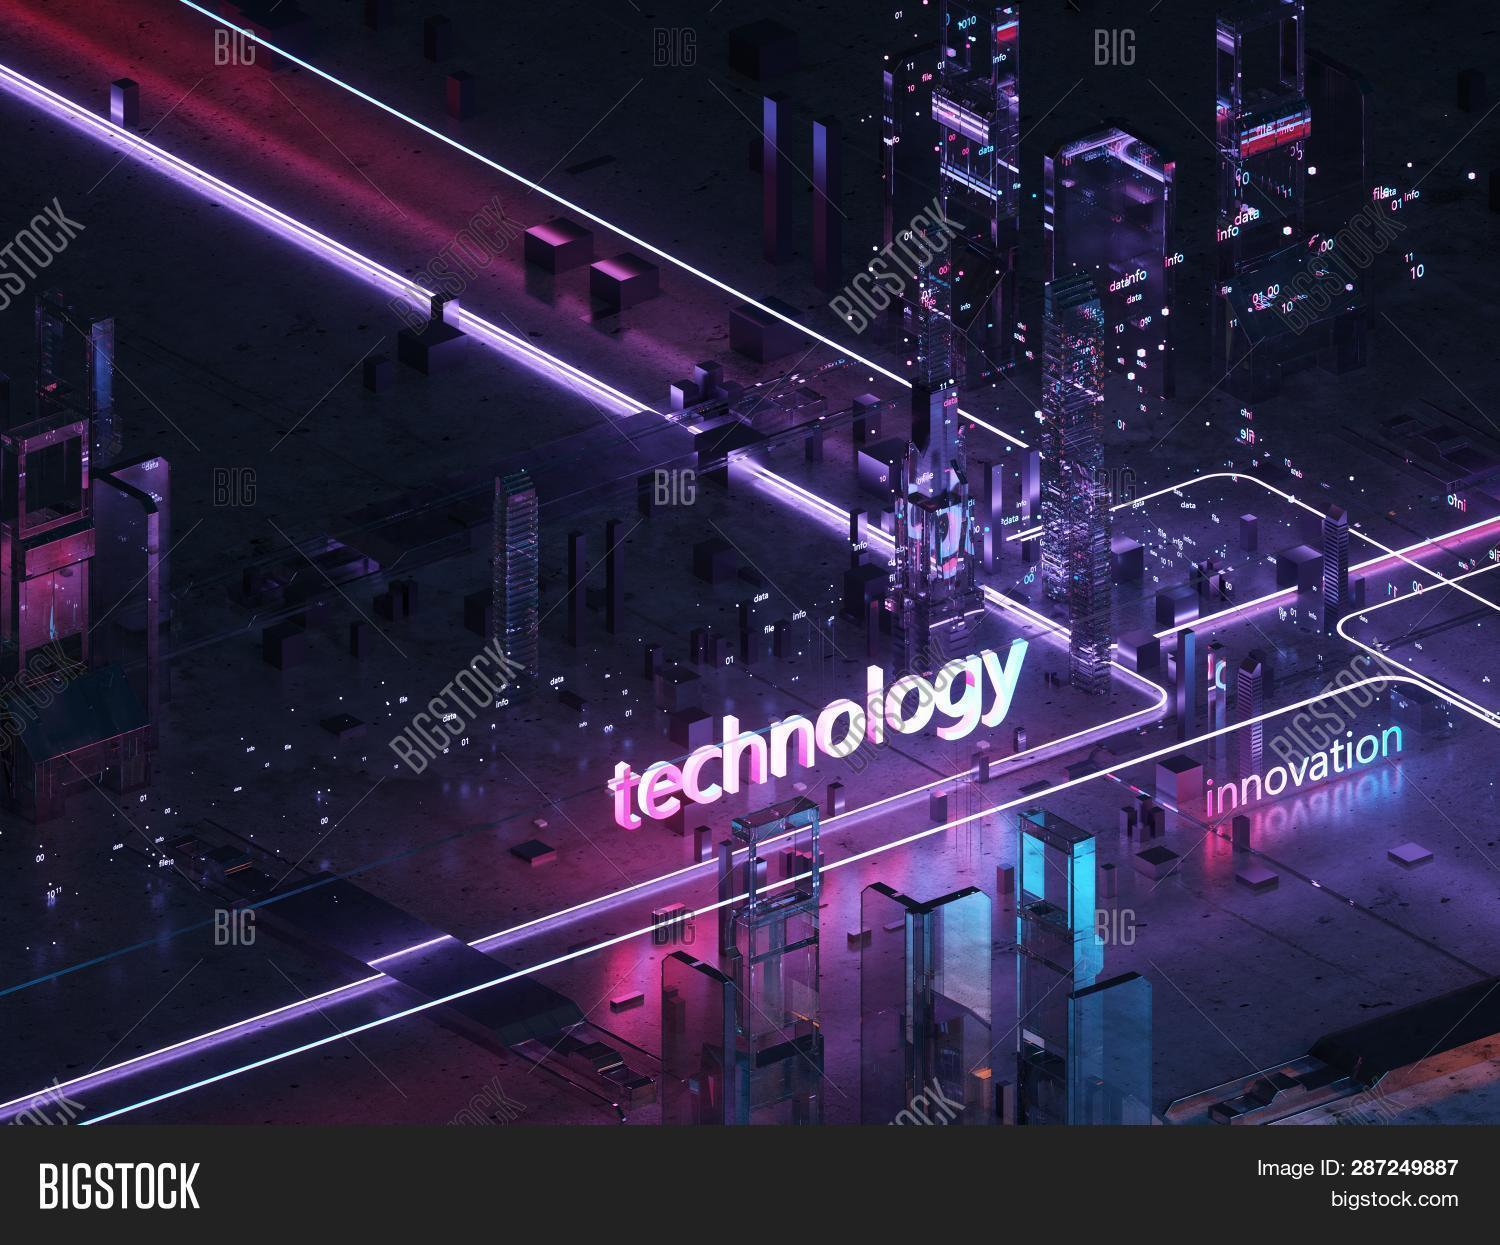 2019,3d,80s,abstract,app,application,background,blueprint,building,business,city,cityscape,code,concept,construction,copyspace,cover,cross,data,design,device,digital,effect,elements,fi,future,futuristic,glossy,glow,high,hitech,hologram,illustration,infographic,innovation,light,line,magazine,modern,neon,night,particles,platform,reflection,render,sci,screen,tech,technology,trendy